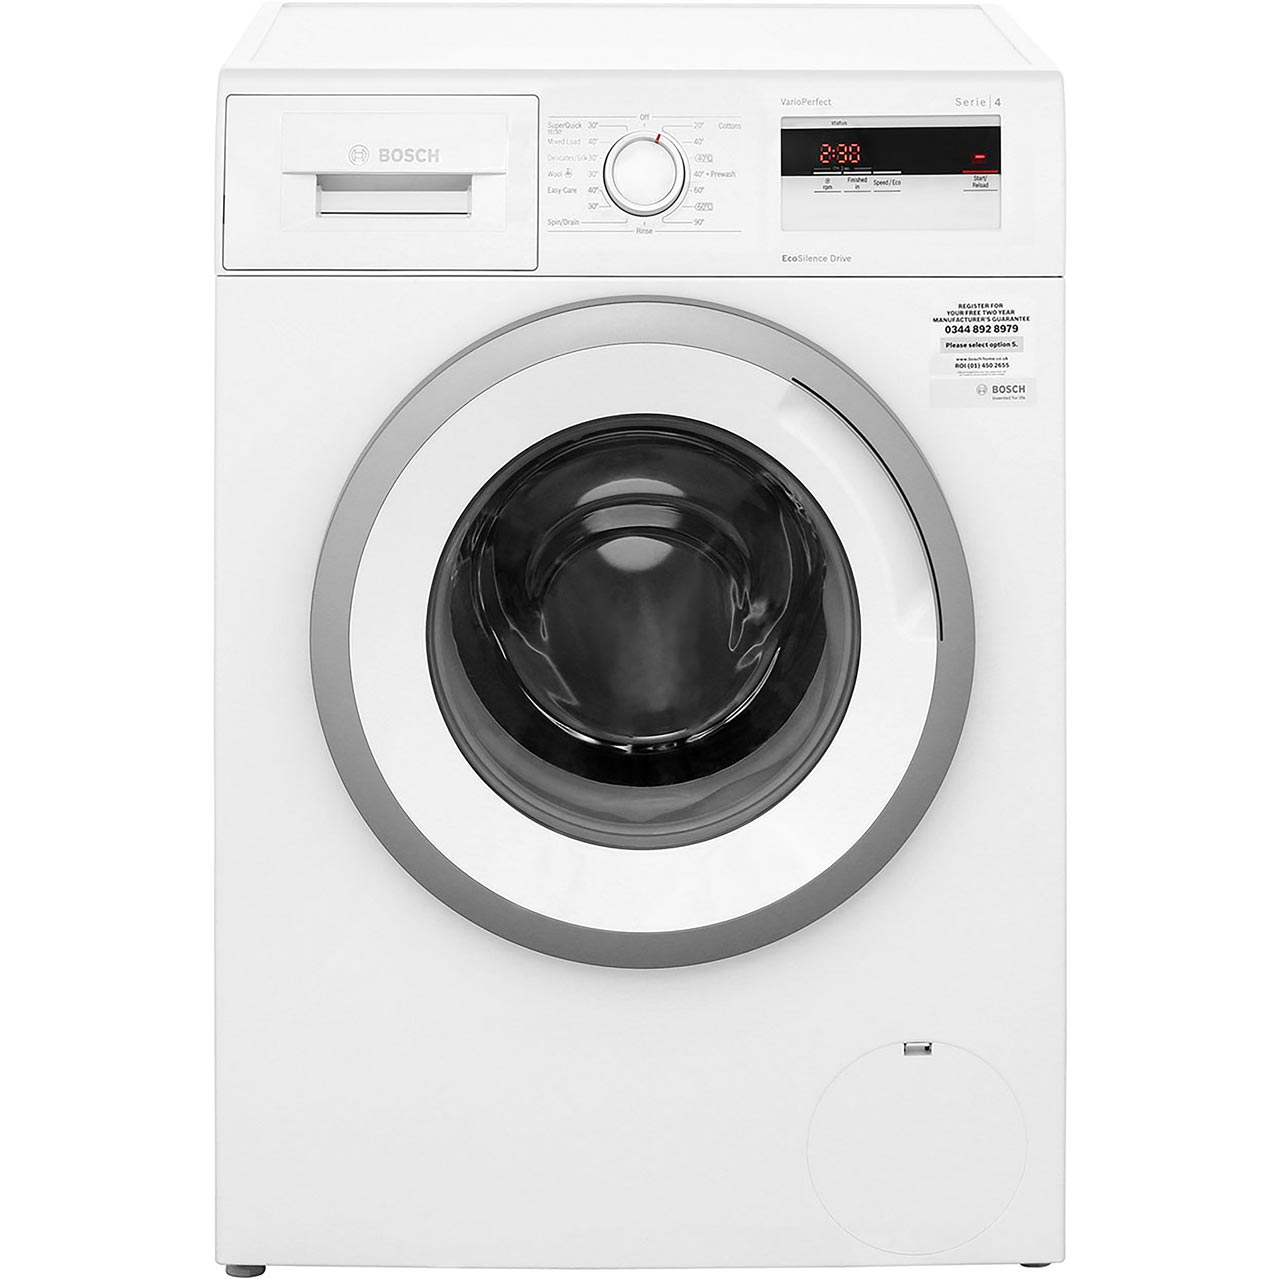 hight resolution of  bosch serie 4 wan28050gb 7kg washing machine with 1400 rpm white a rated